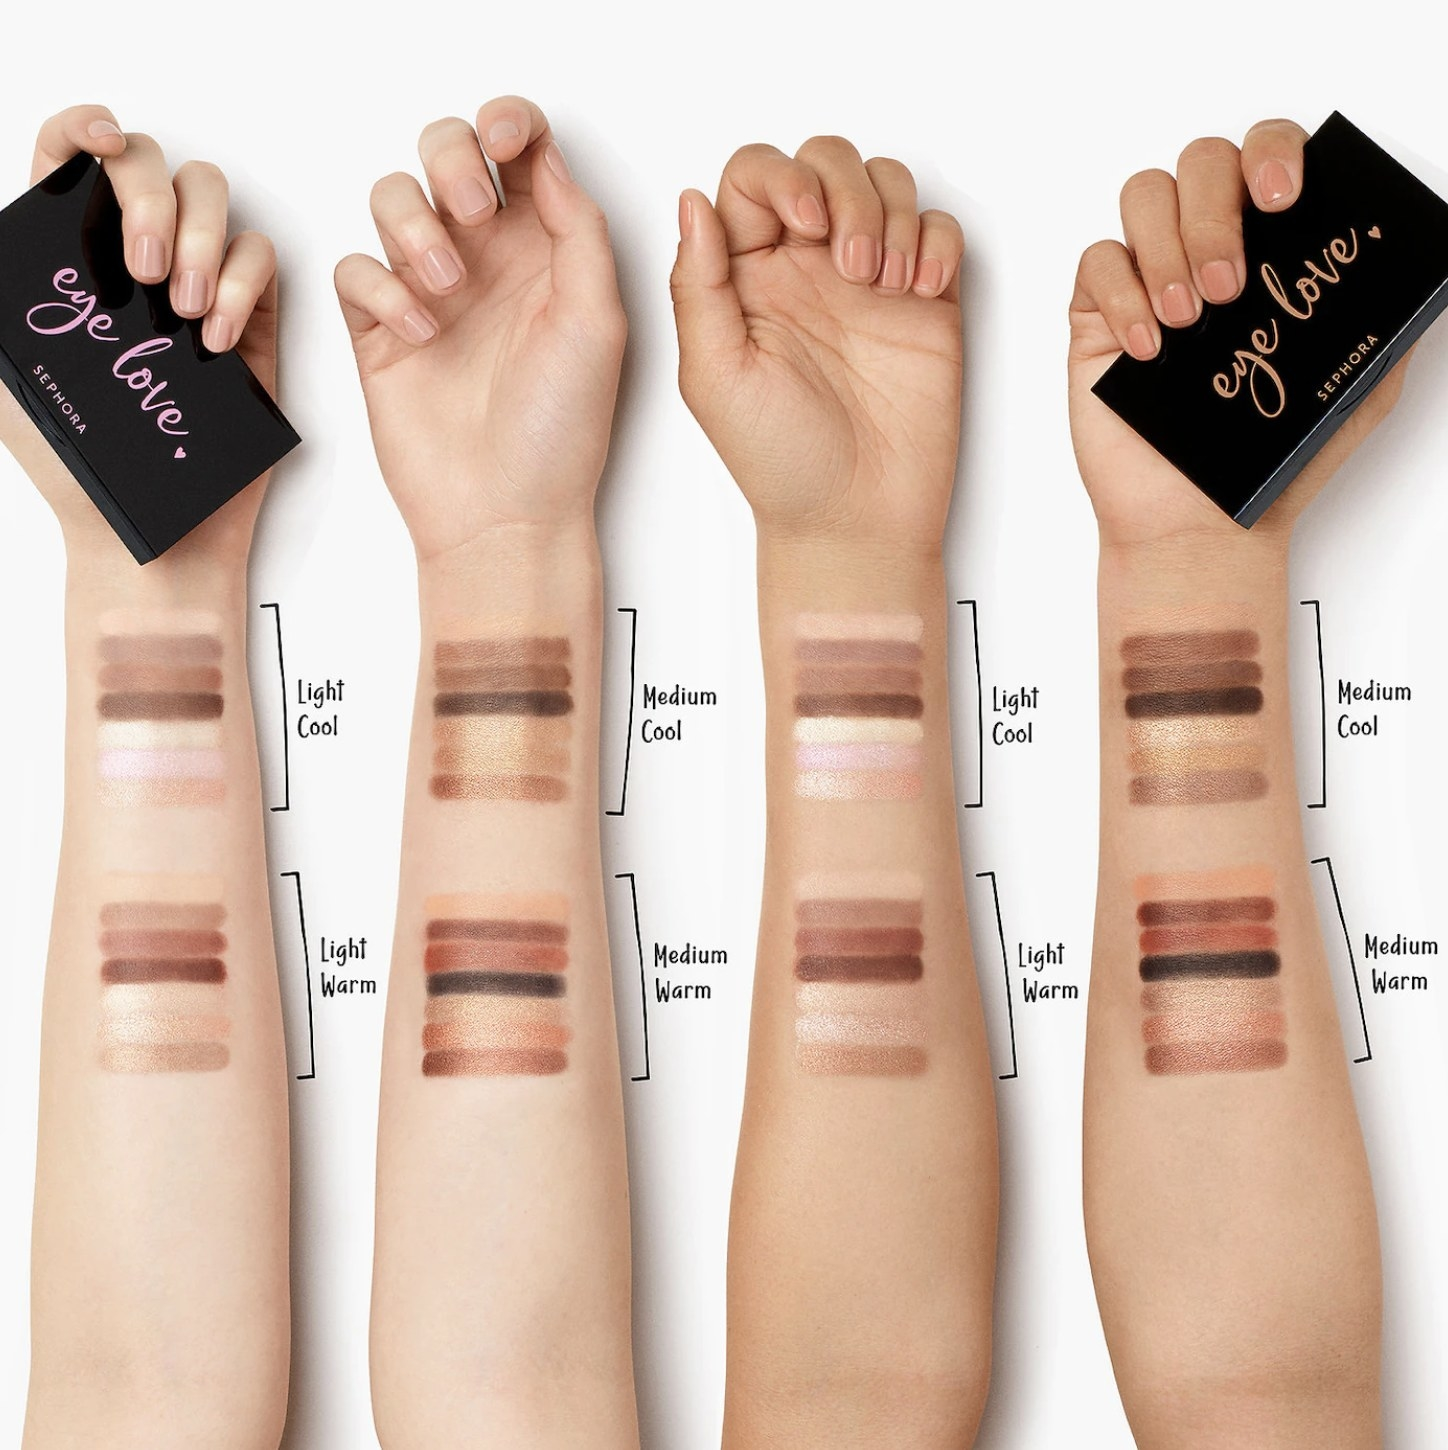 Four arms with different eye shadow shades applied to them